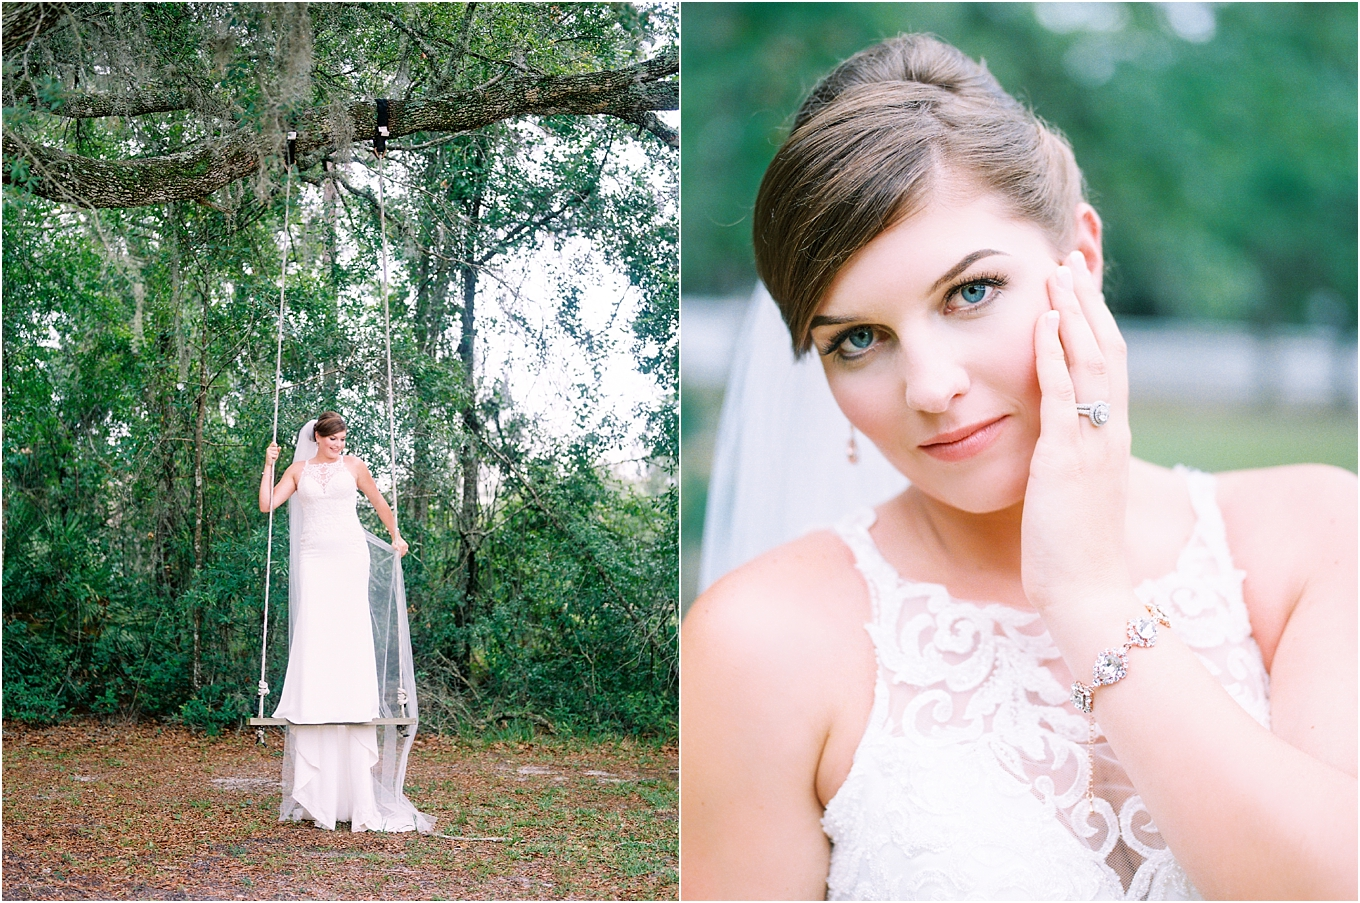 Lisa Silva Photography- Ponte Vedra Beach, St. Augustine and Jacksonville, Florida Fine Art Film Wedding and Boudoir Photography- Elegant Blush and Navy Wedding at Chandler Oaks Barn in St. Augustine, Florida_0025a.jpg